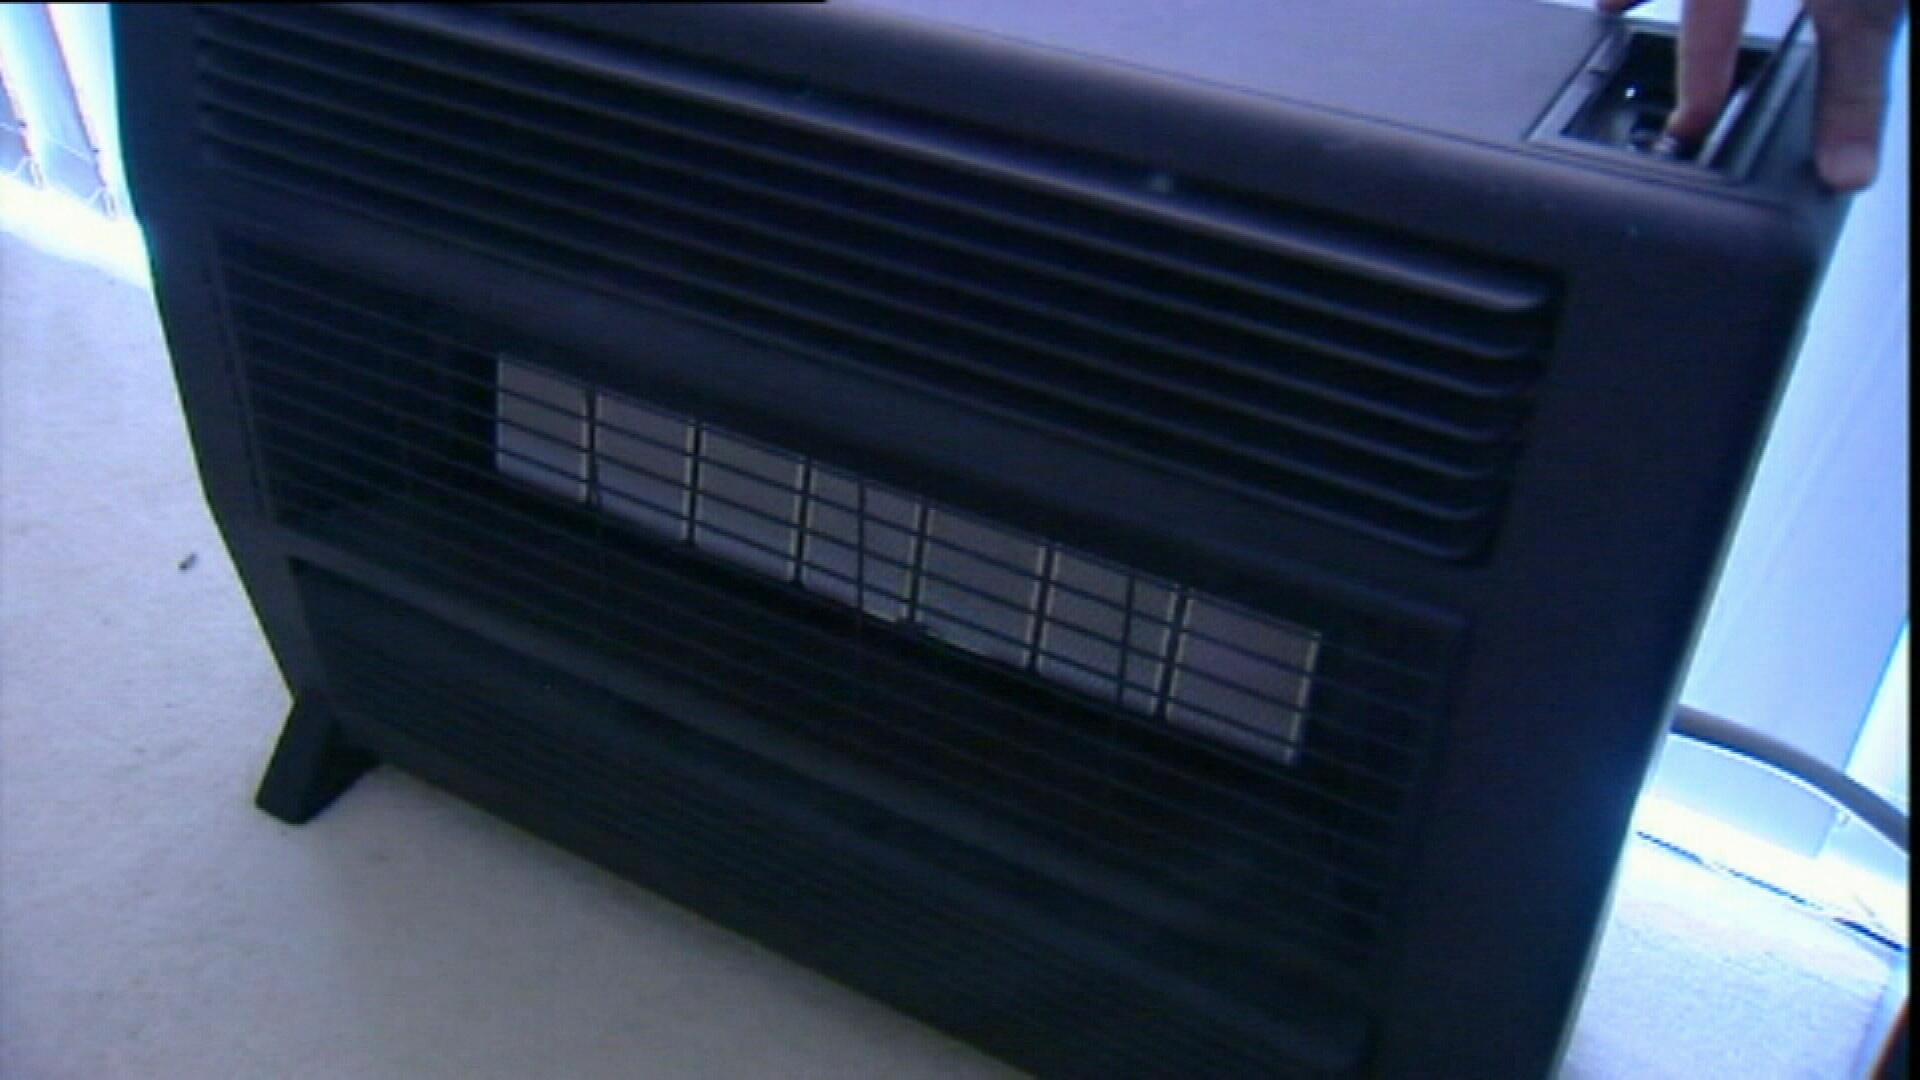 Victorian coroner calls for phasing out of open gas heaters